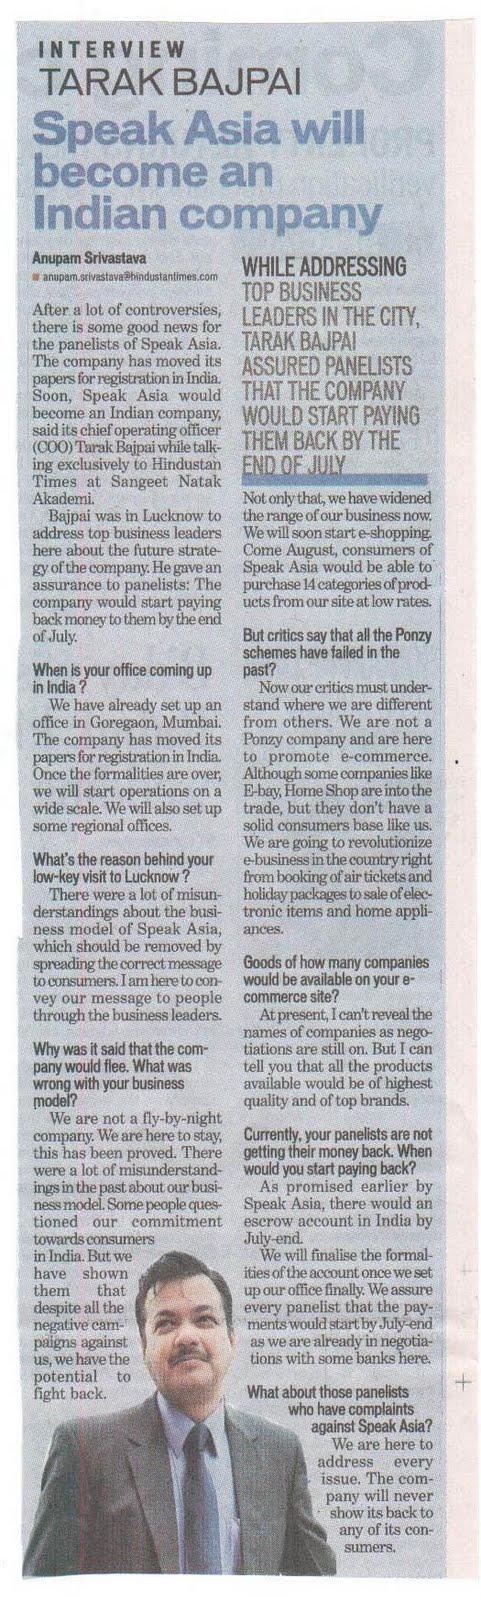 Speak Asia COO Tarak Bajpai interview in  Hindustan Times